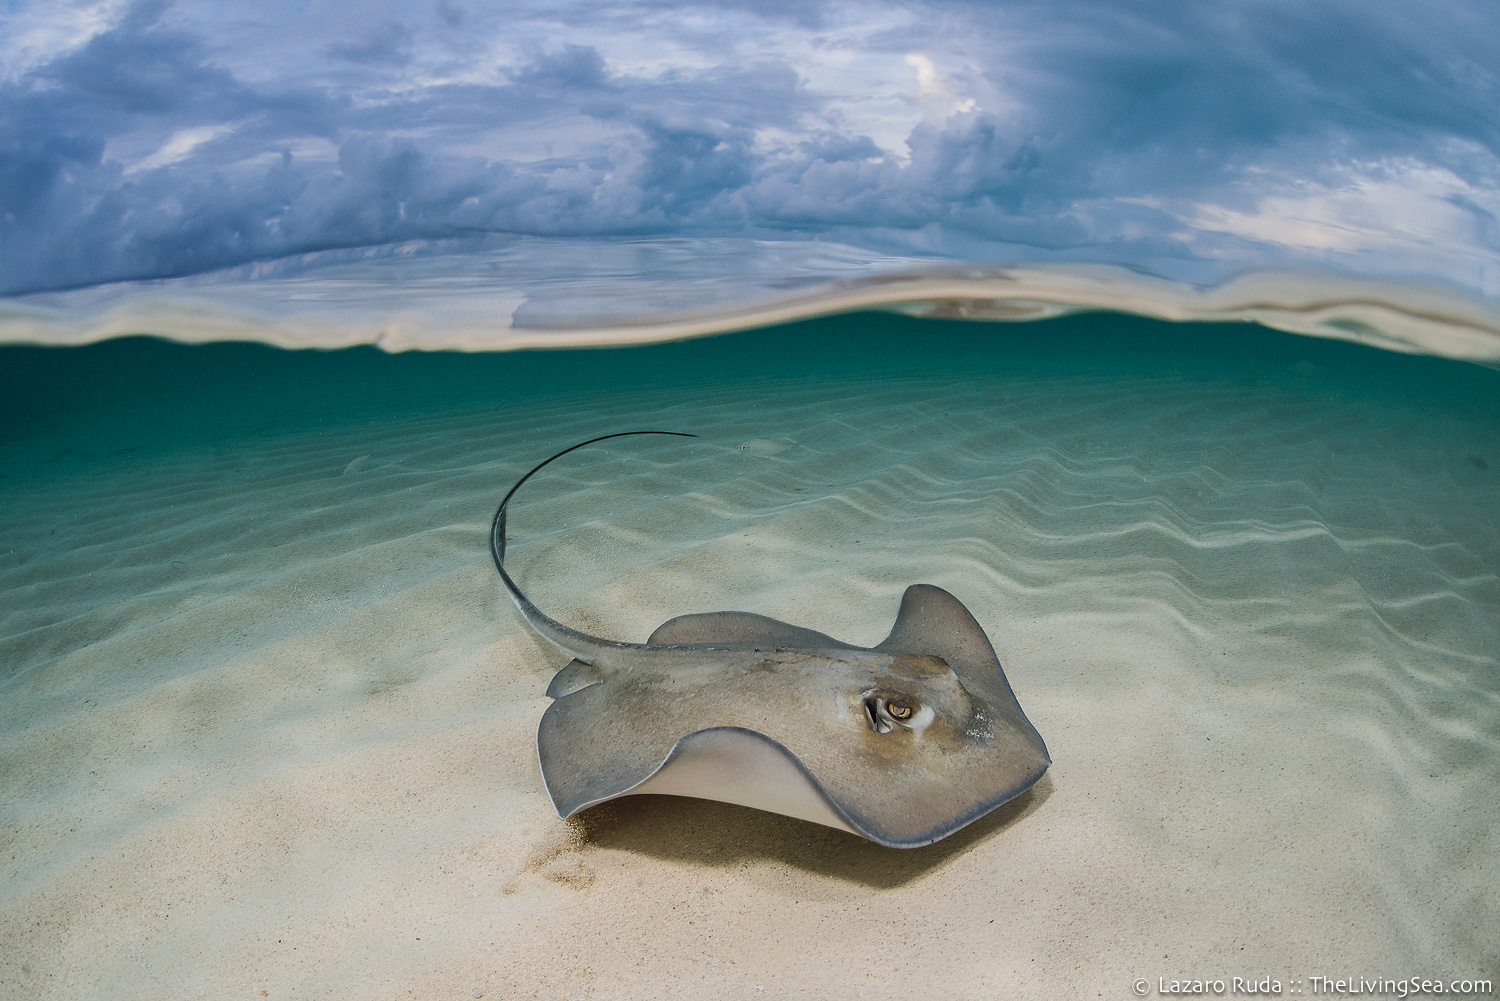 Bahamas, Batoidea: Batoids, Cartilaginous Fishes: Chondrichthyes, Elasmobranchs: Elasmobranchii, Fishes, Marine Life, Rajiformes, Rays and Skates, West Indies, Whiptail Stingrays: Dasyatidae, marine, ocean, over-under: under/over: under-over: split: split perspective: ha, southern stingray: Dasyatis americana, tropical, underwater, underwater photo, wide angle